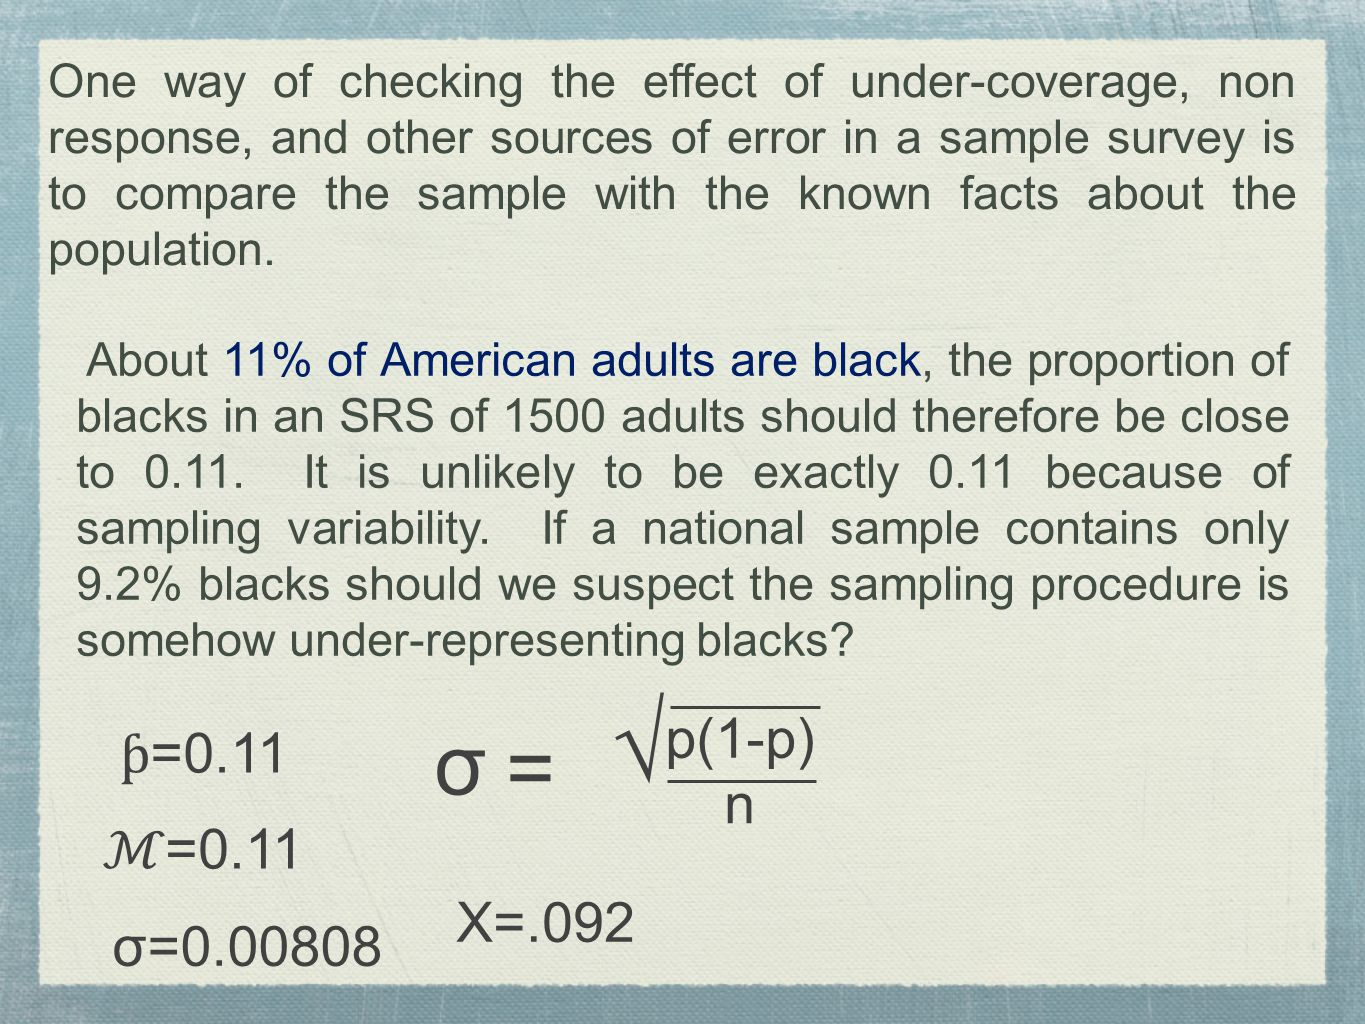 One way of checking the effect of under-coverage, non response, and other sources of error in a sample survey is to compare the sample with the known facts about the population.